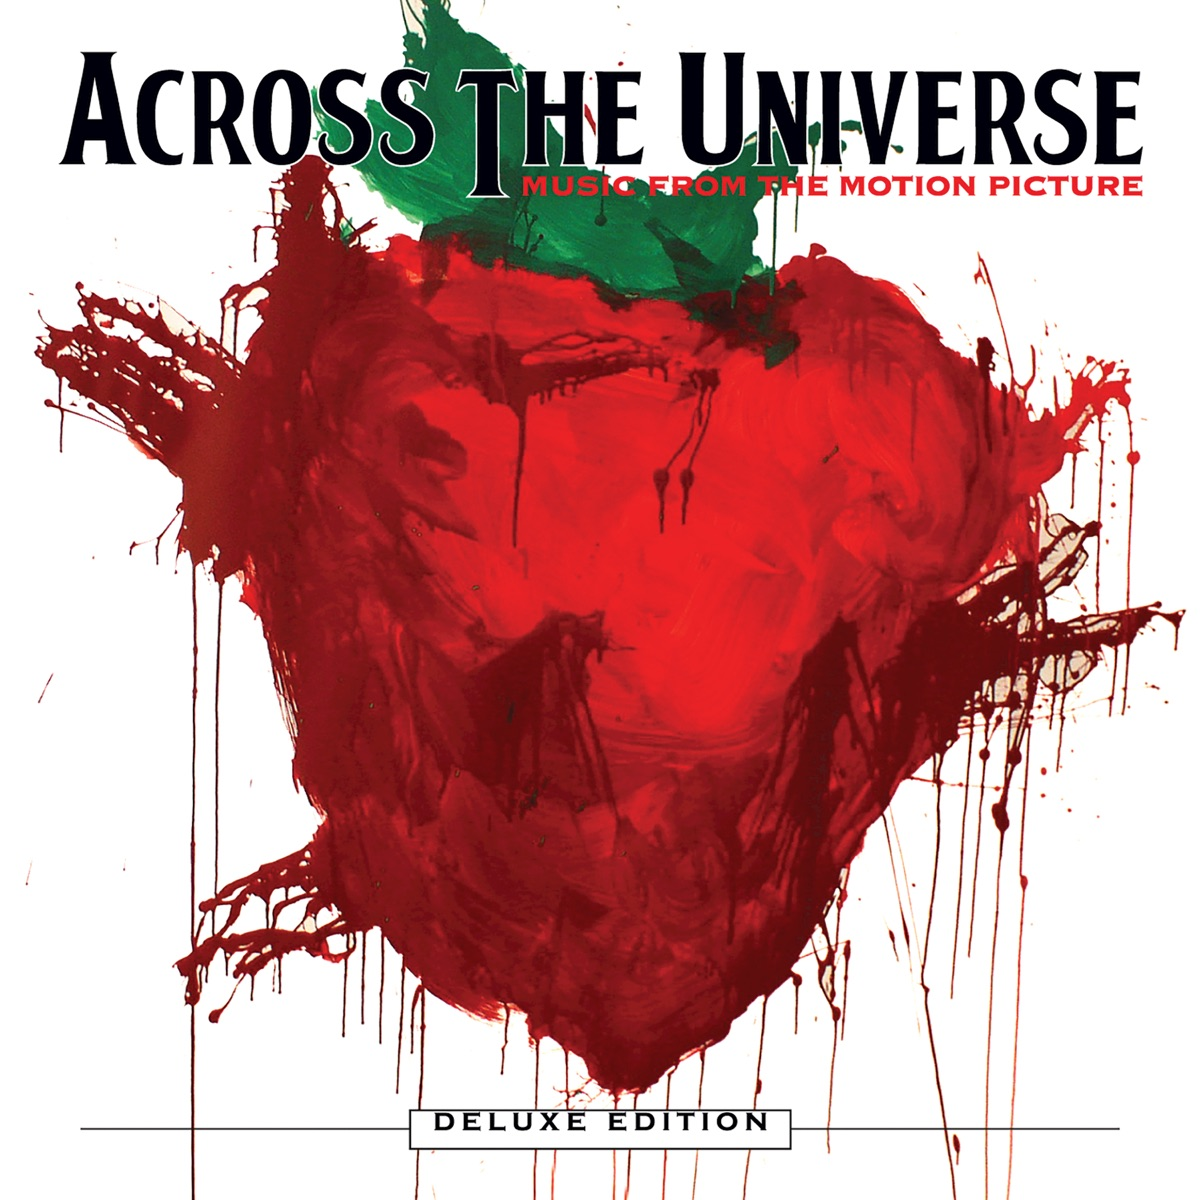 Across the Universe Music from the Motion Picture Deluxe Edition Various Artists CD cover